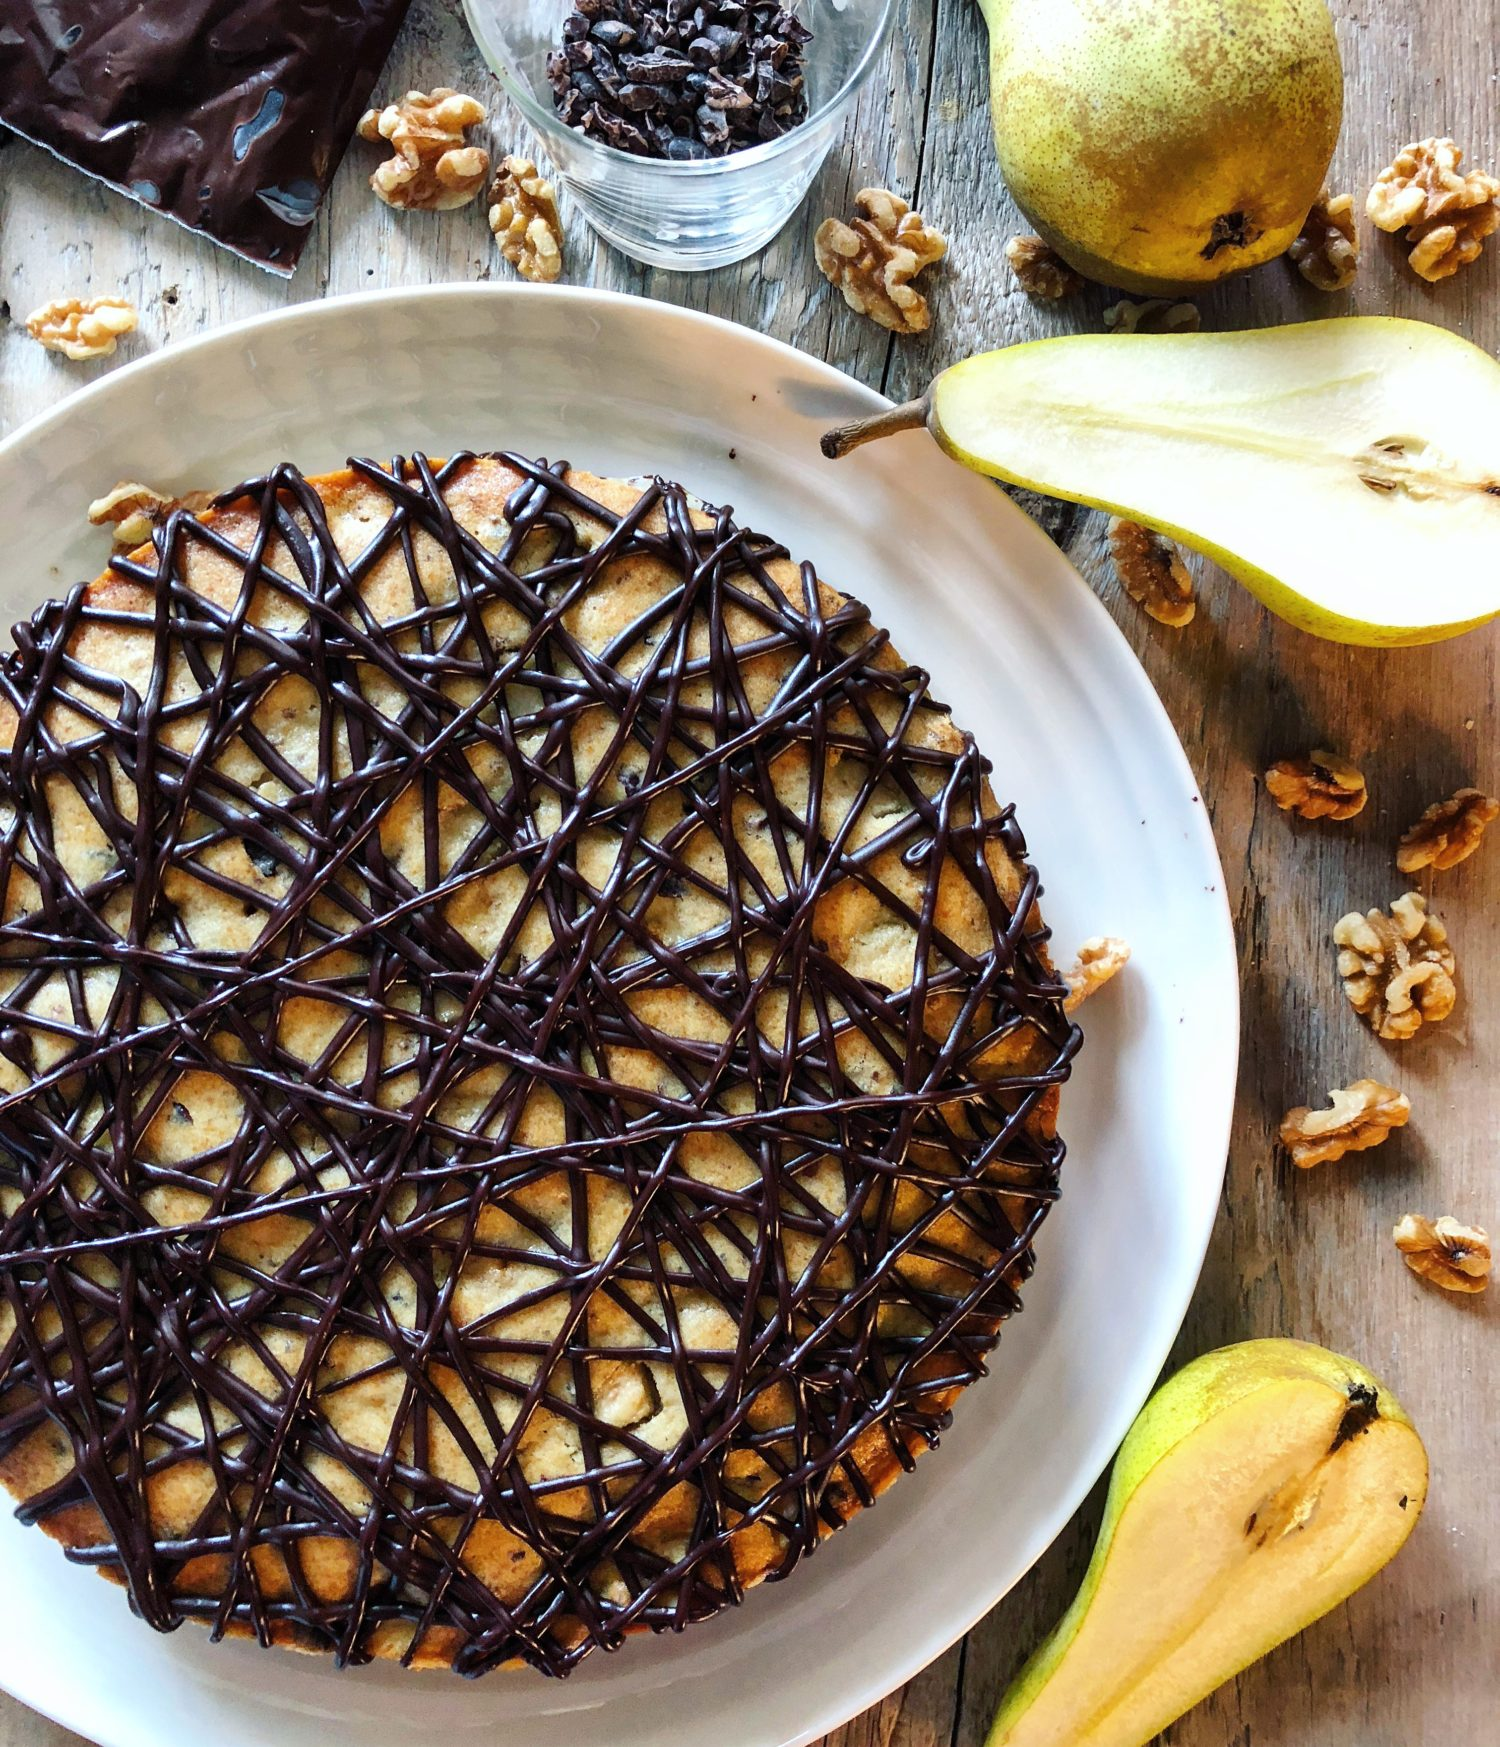 Pear Chestnut Cake with chocolate ganache drizzle